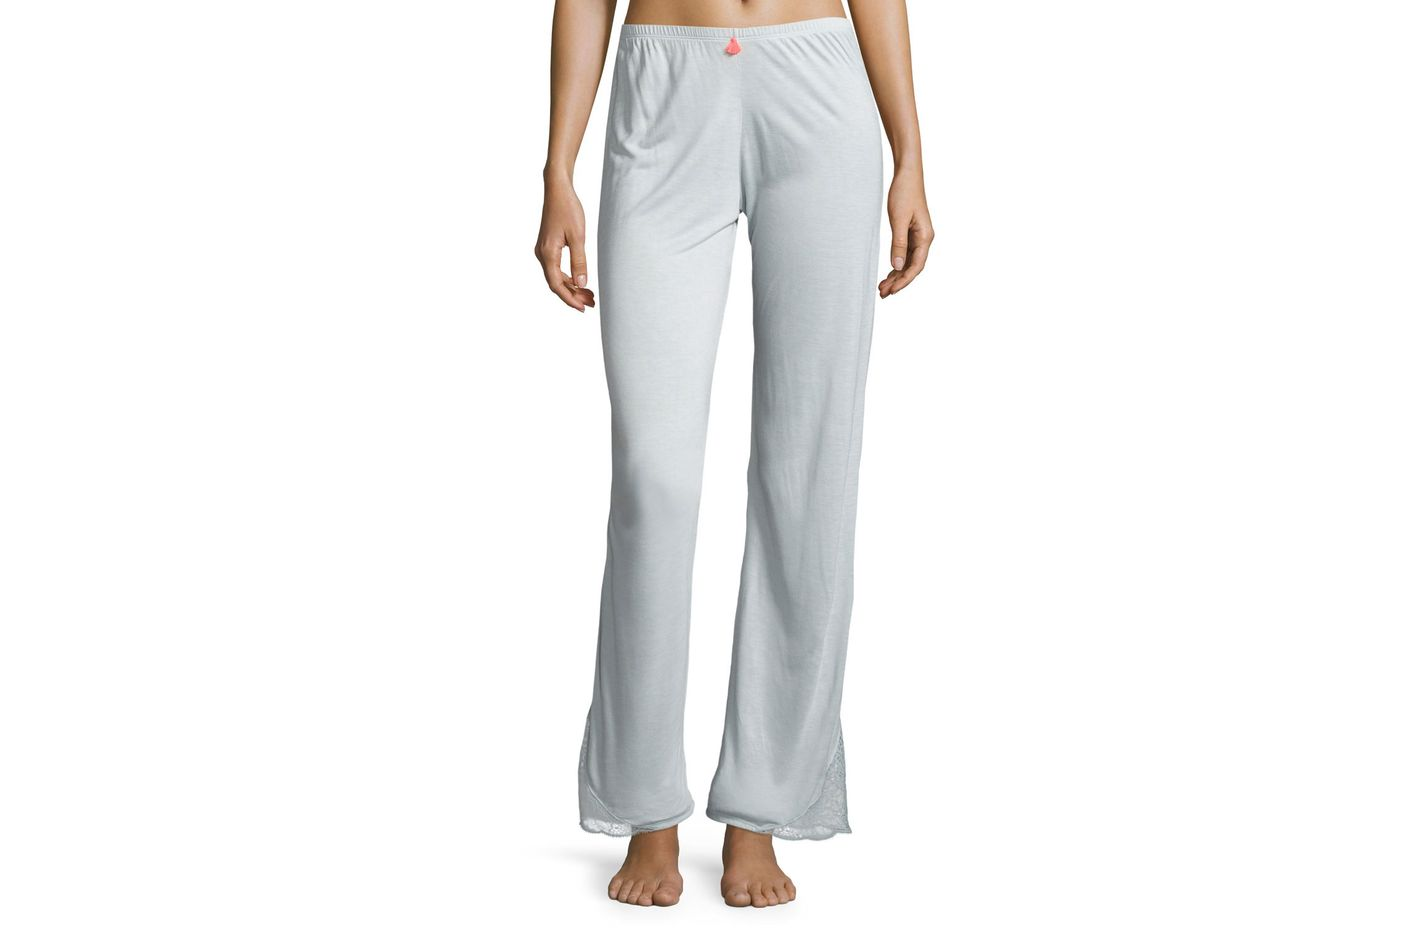 Eberjey Lounge Pants